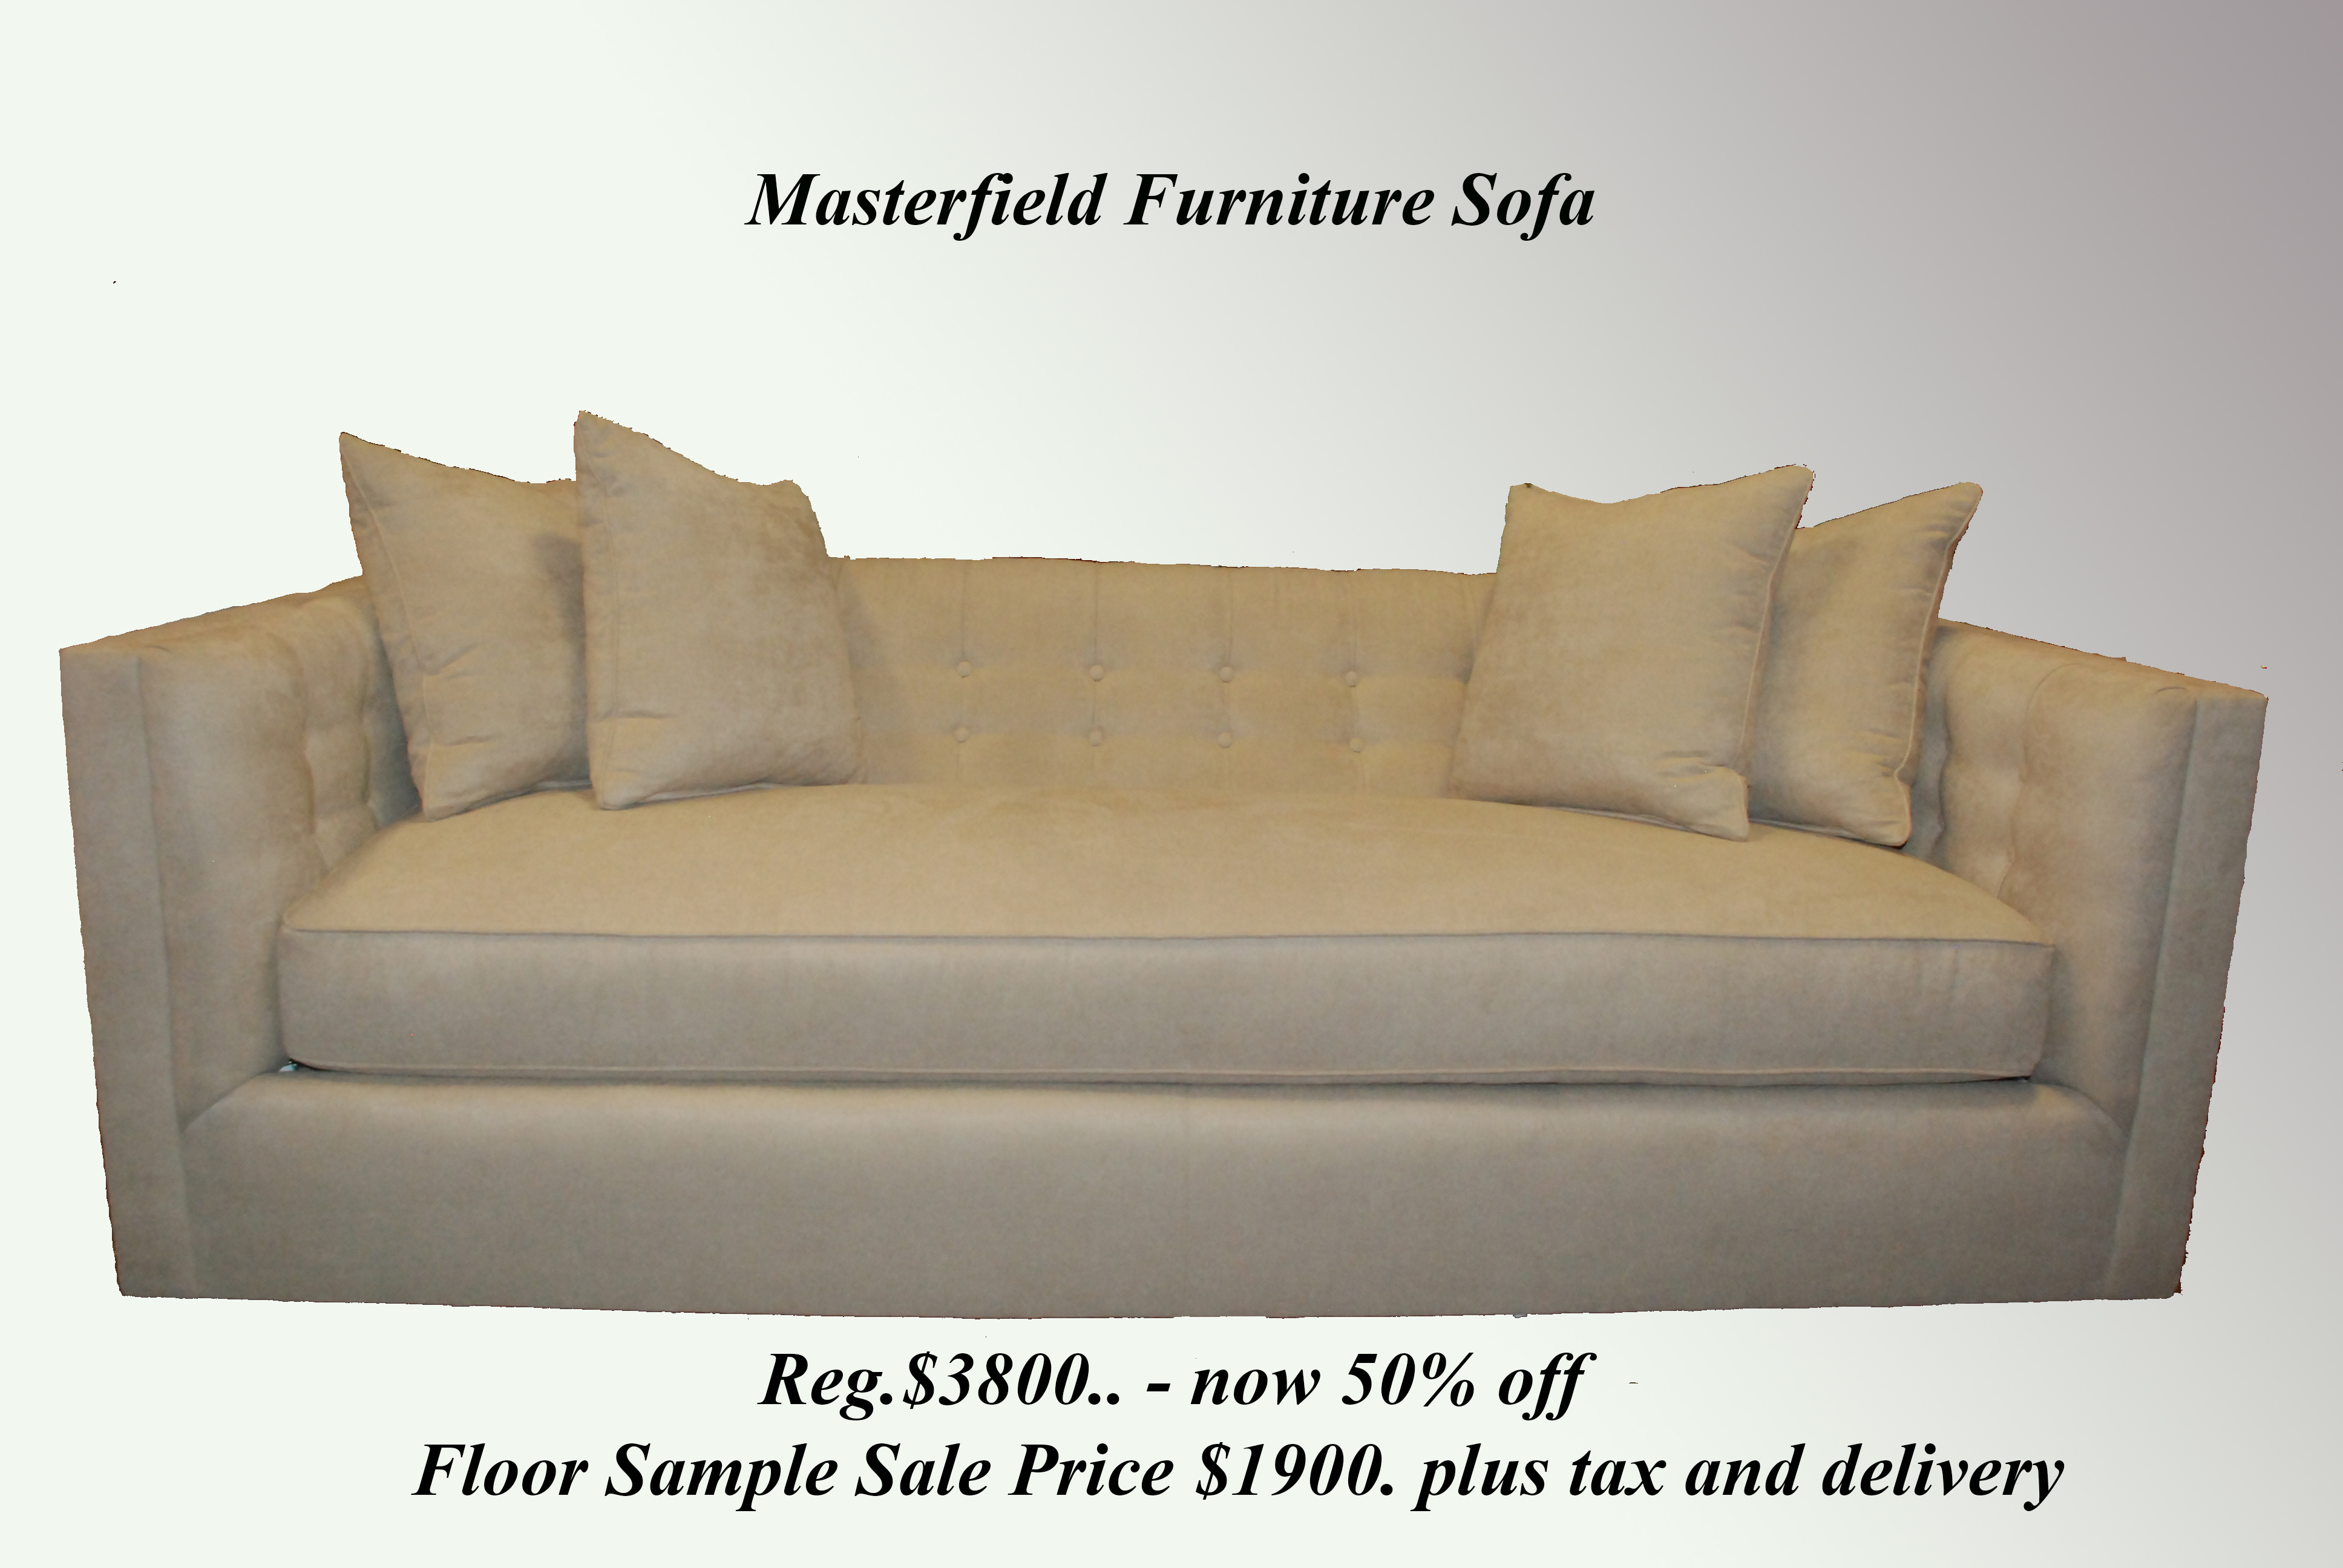 Tent Sale At Woodstock Furniture Outlet Youtube Masterfield